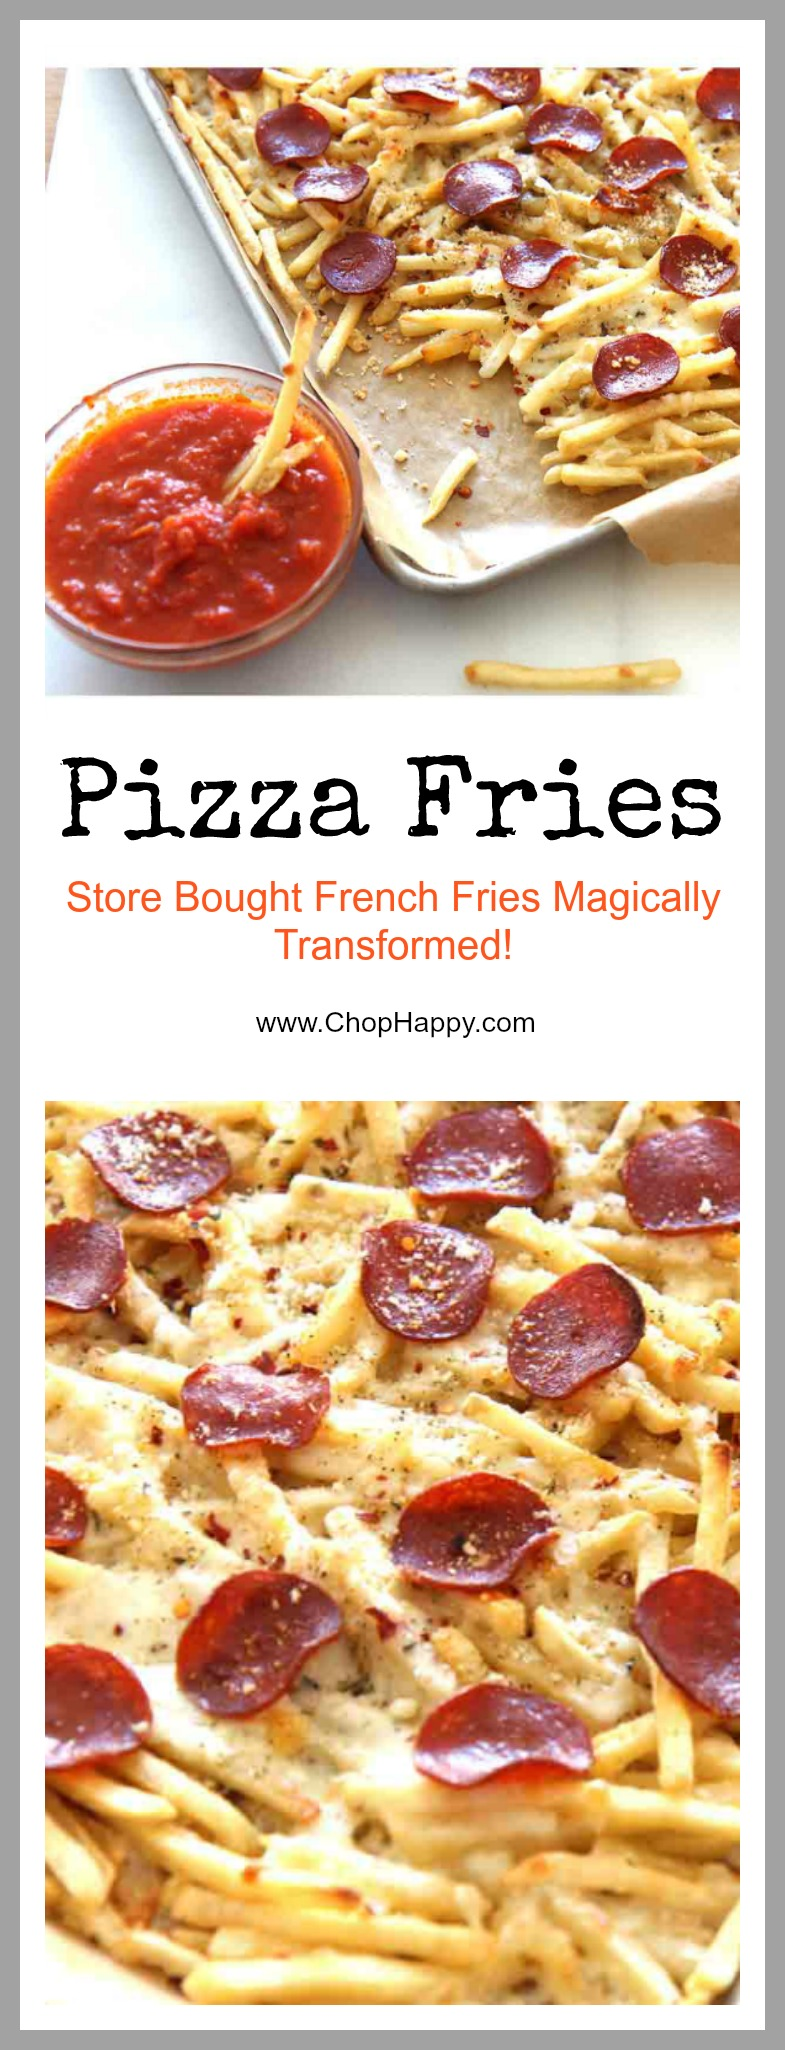 Pizza Fries Recipe that is so easy, quick, and will make your weeknights feel like a party. We took some awesome short cuts to make this recipe even easier. ChopHappy.com